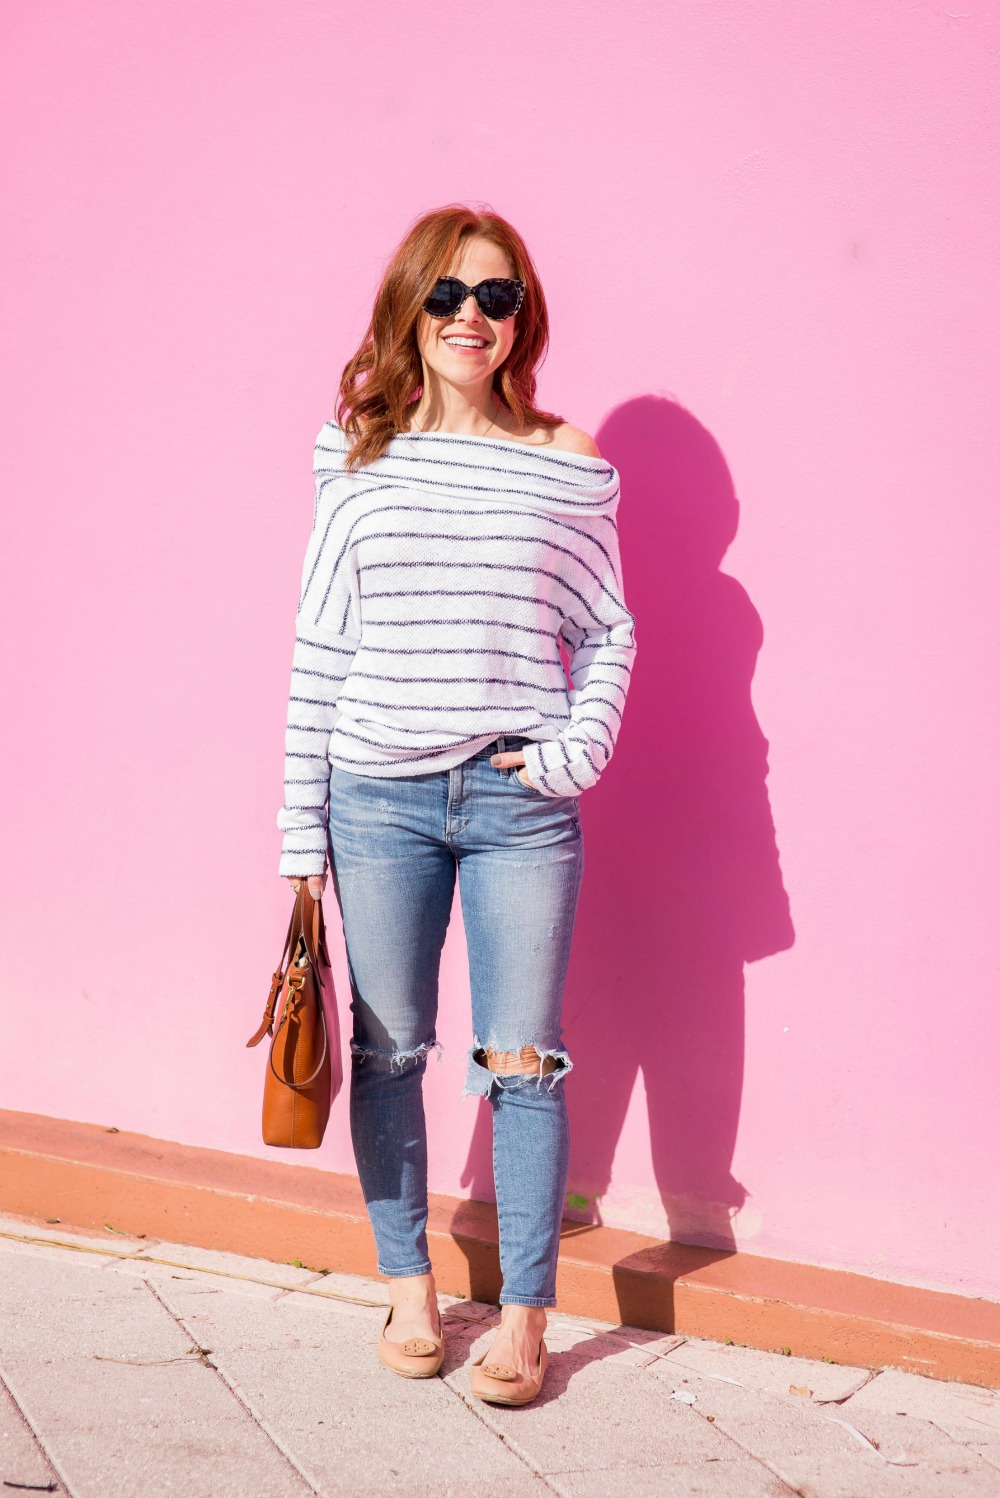 Easy spring outfit idea // the modern savvy - The most versatile striped top by popular Florida style blogger The Modern Savvy